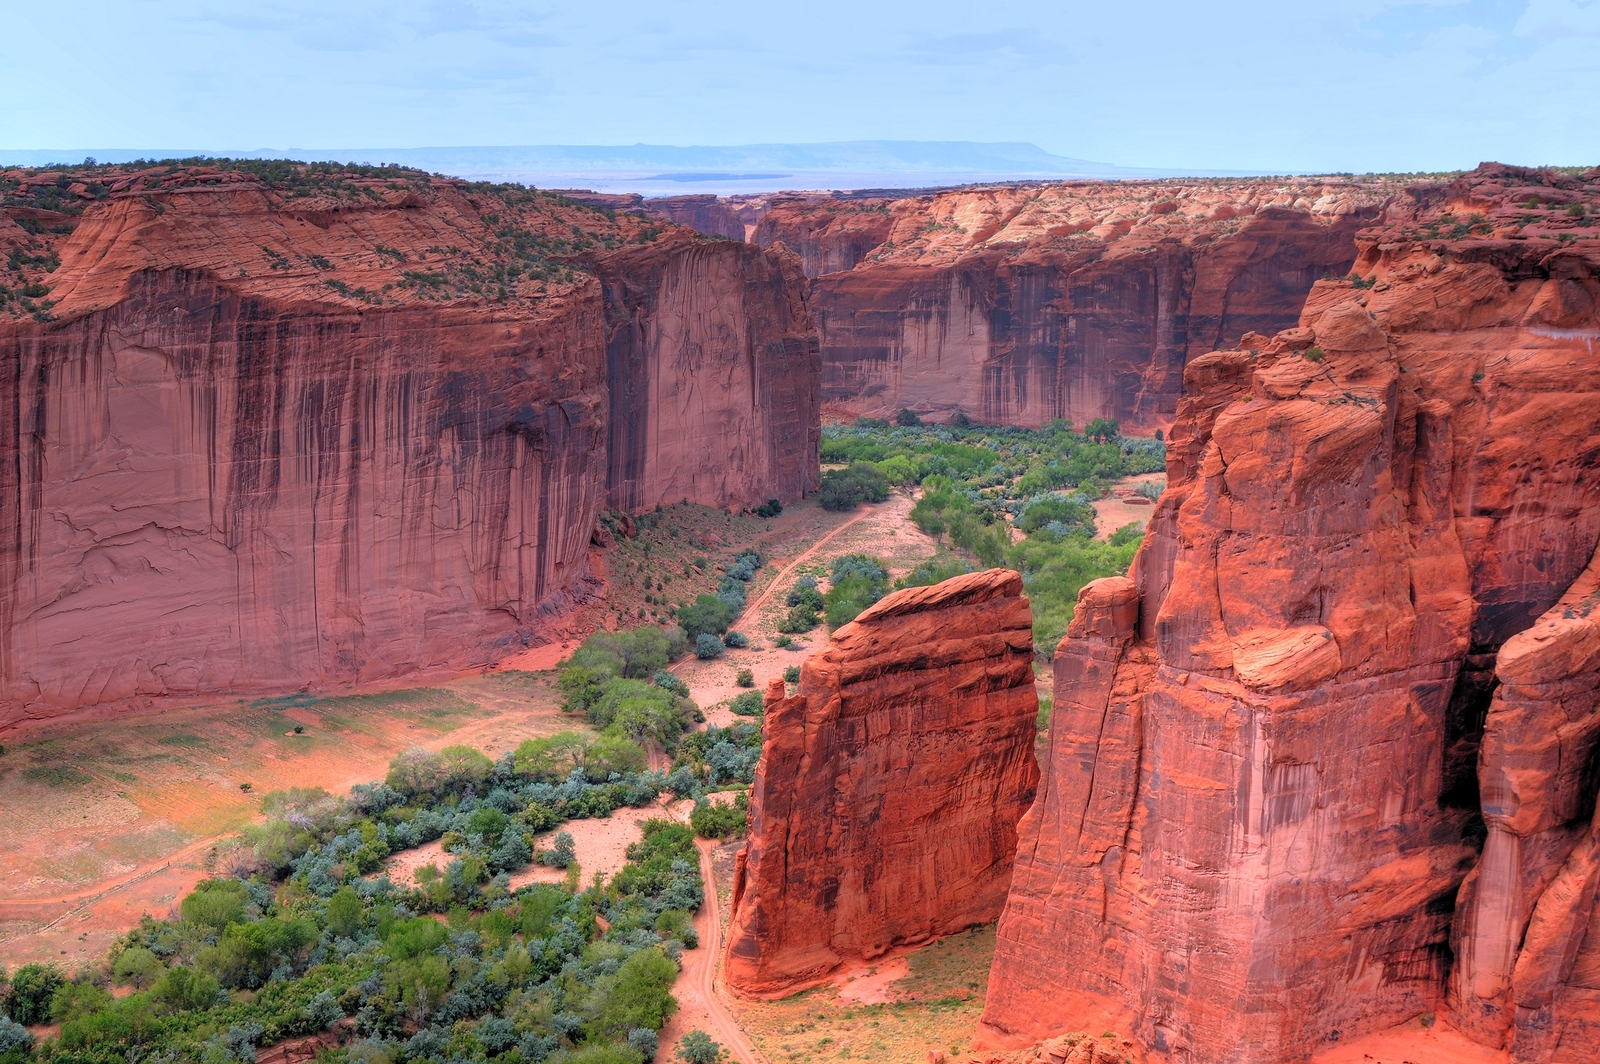 Canyon de Chelly: History That Echoes Through the Canyons